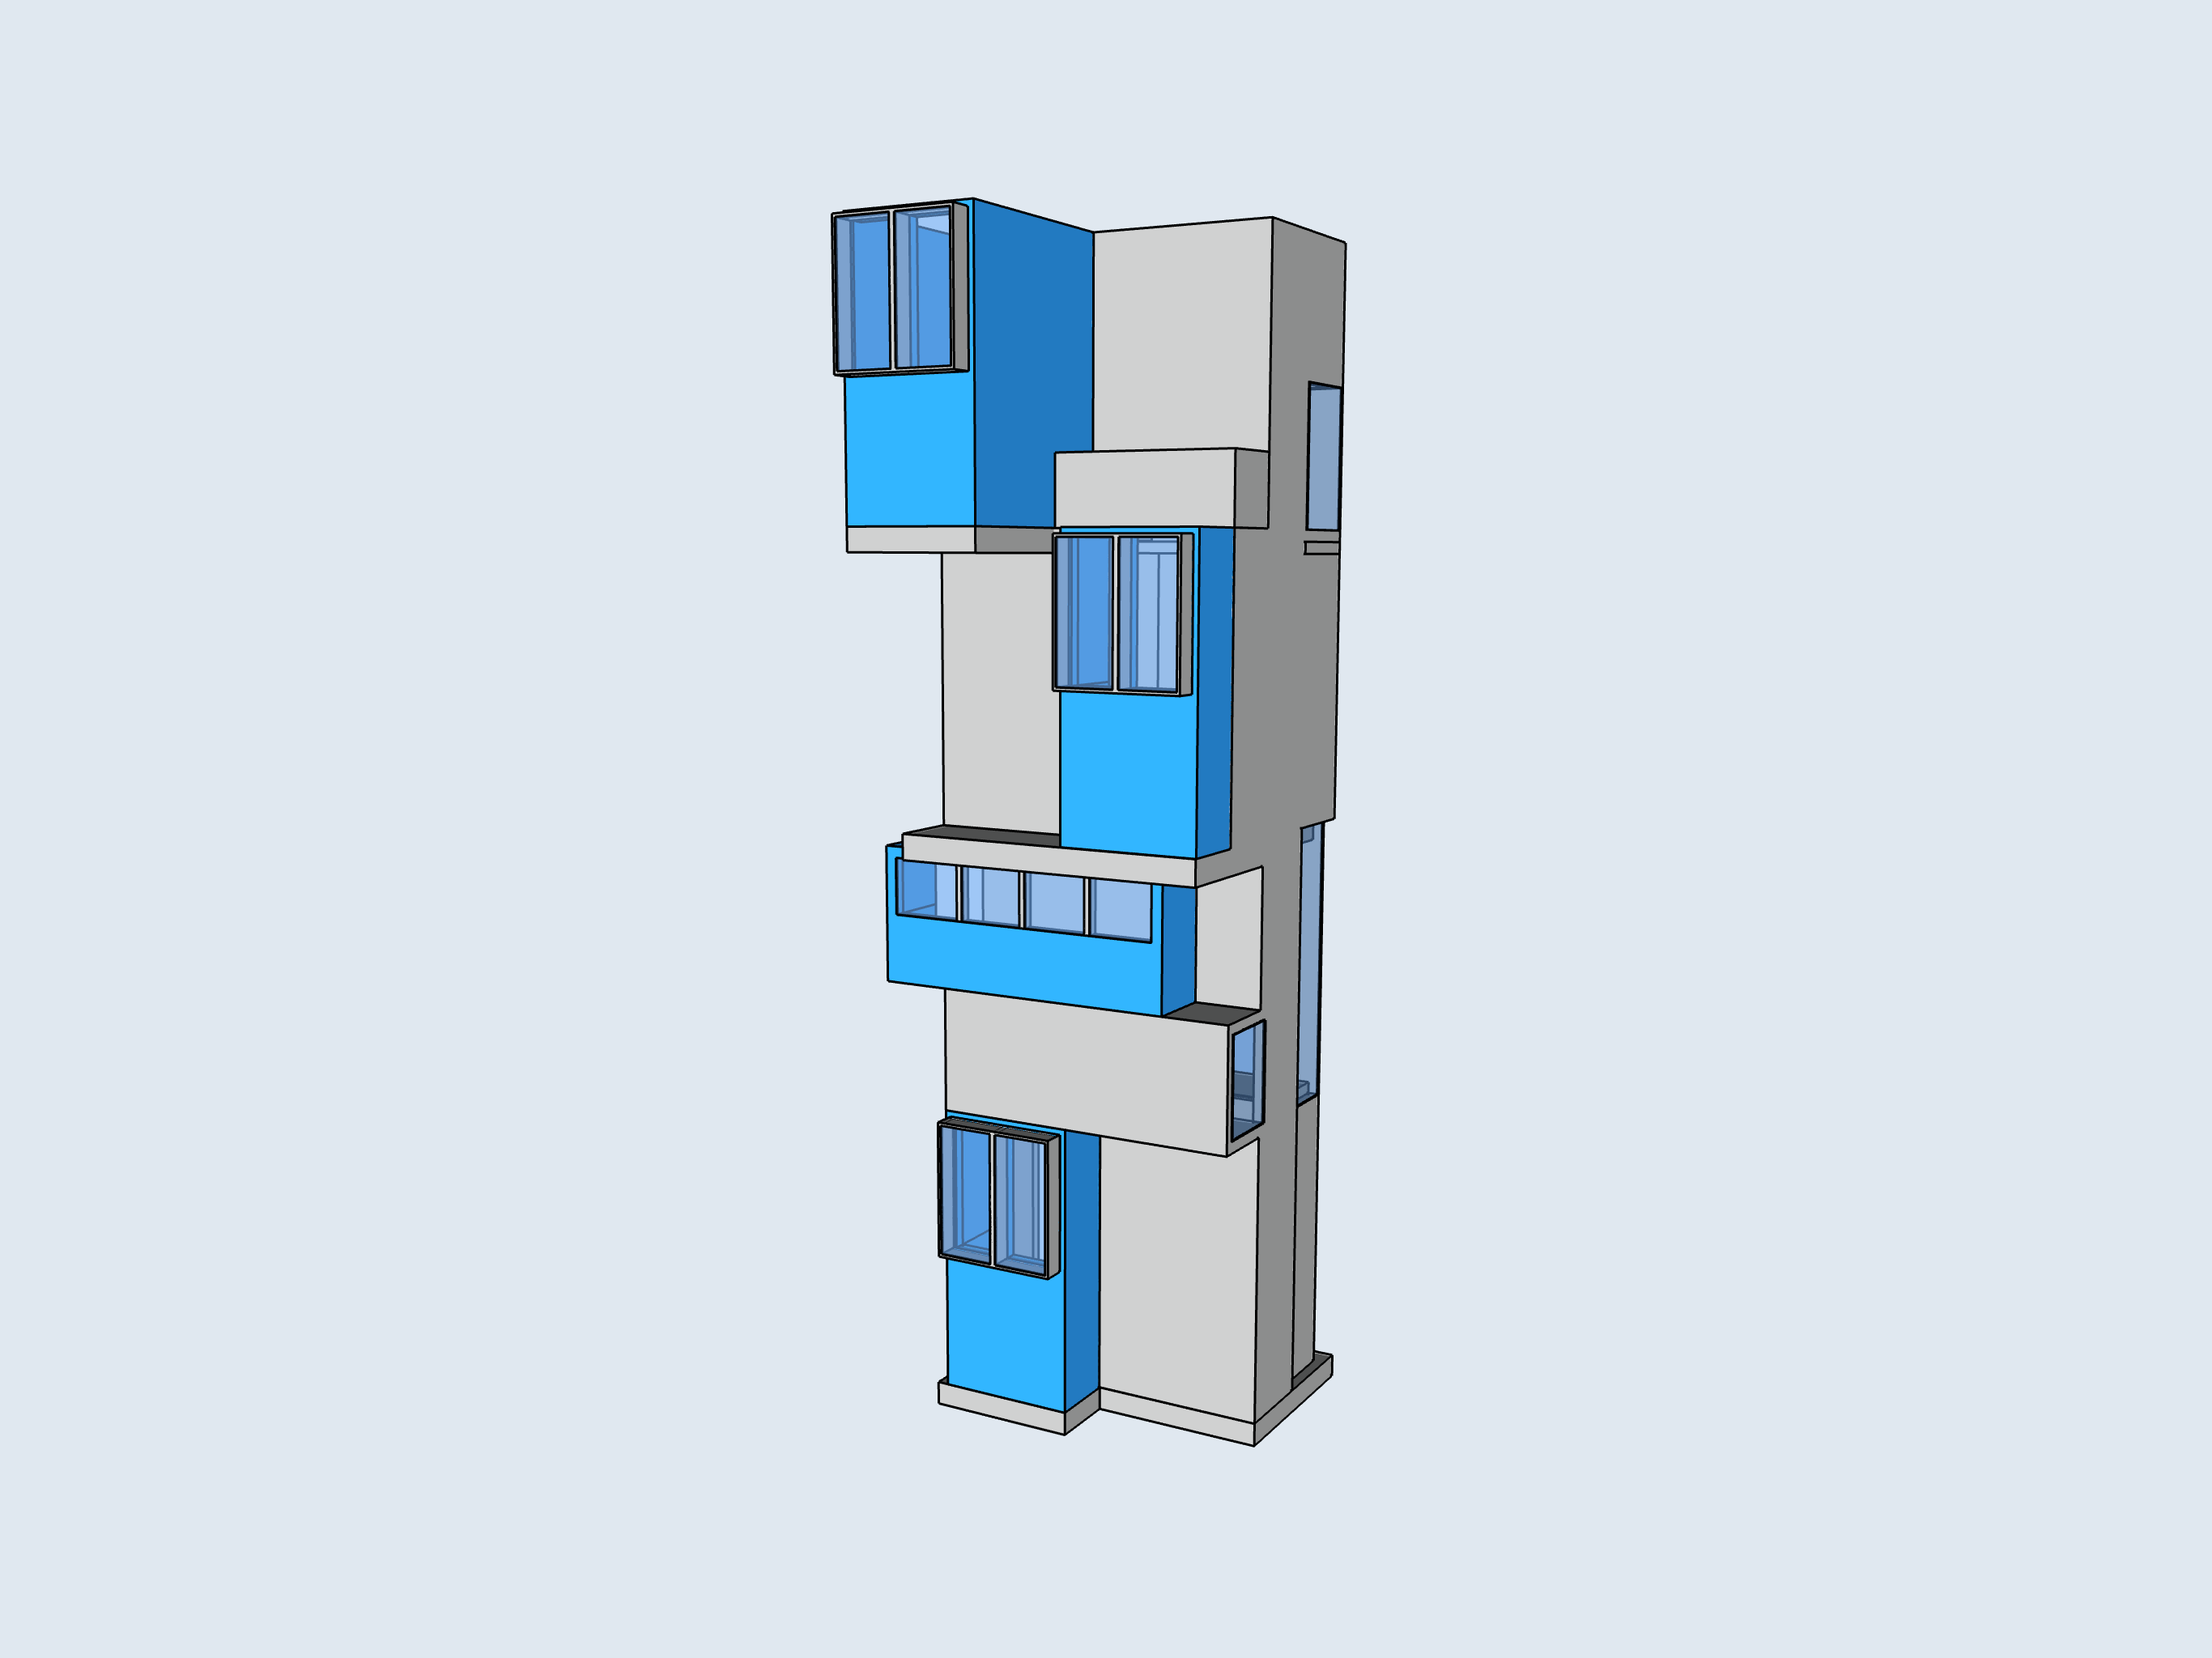 architecture_student_shapr3d_userstory